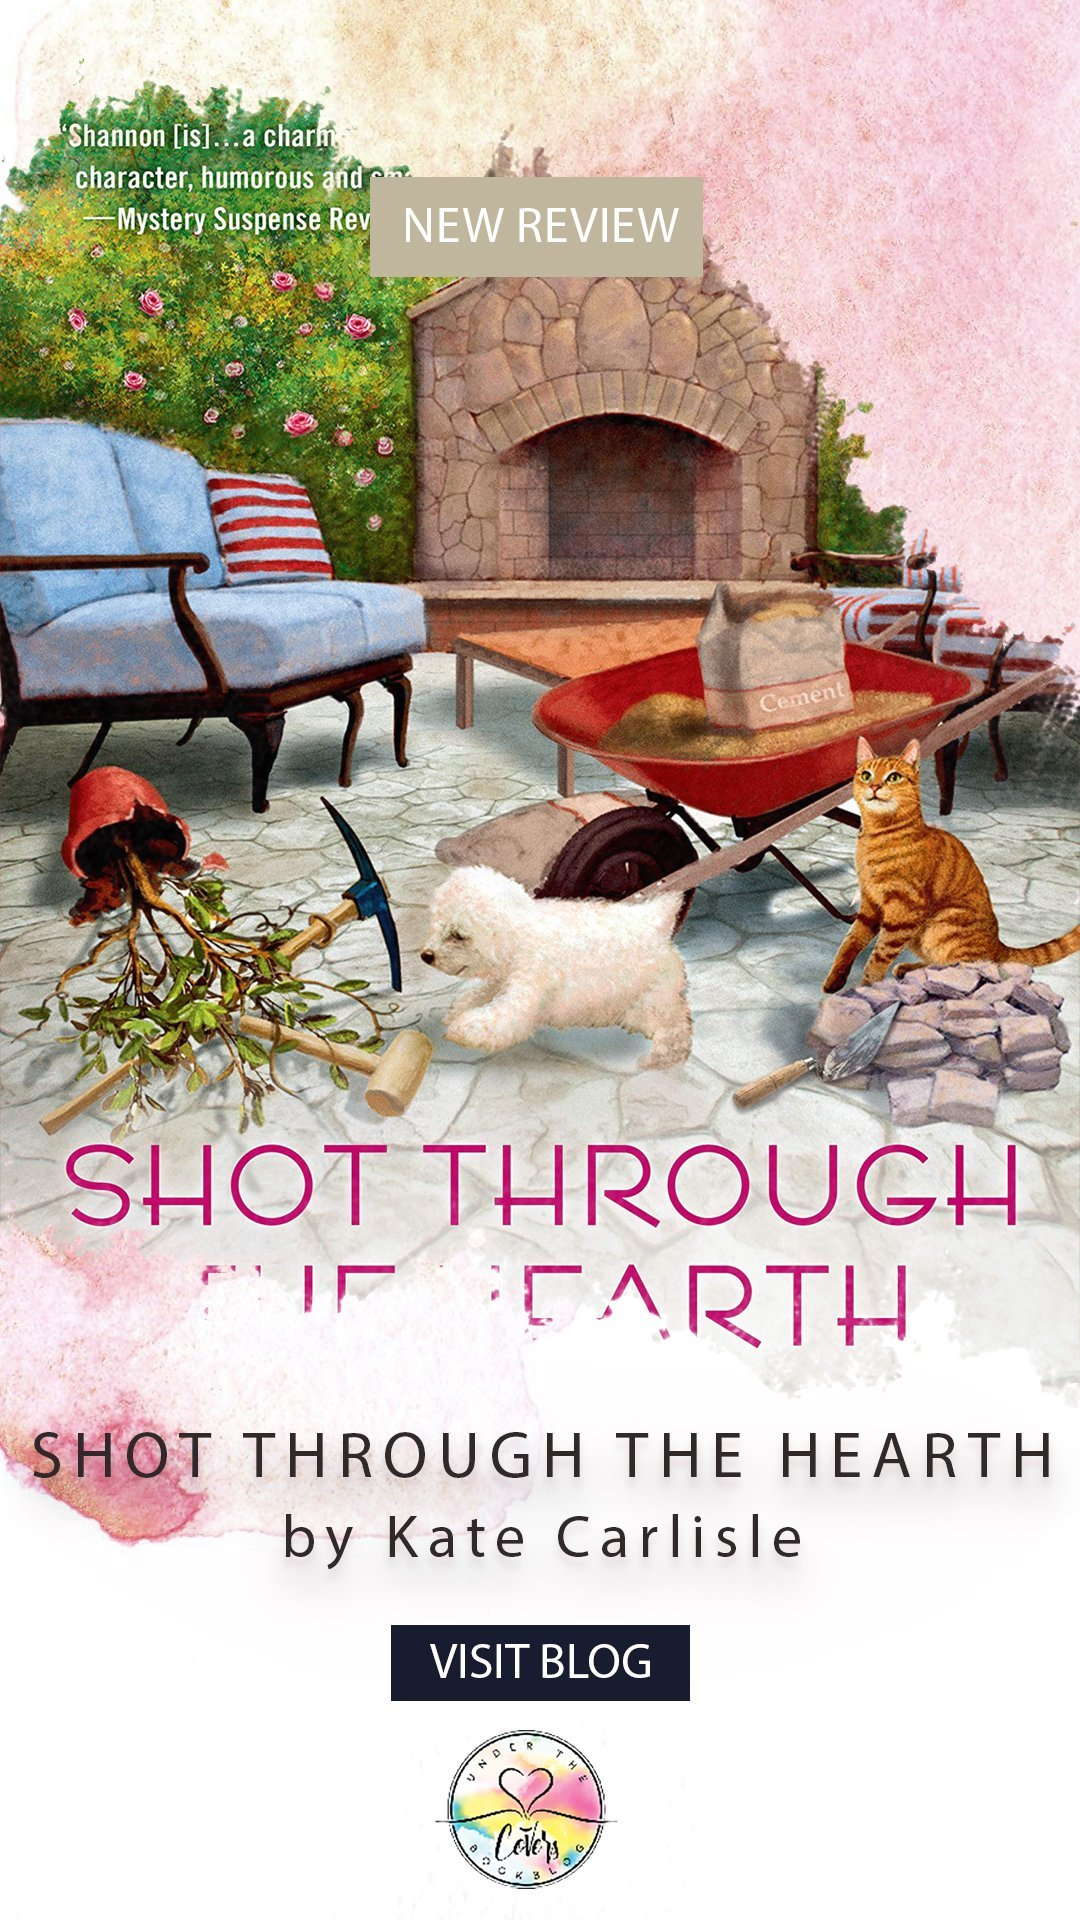 ARC Review: Shot Through the Hearth by Kate Carlisle